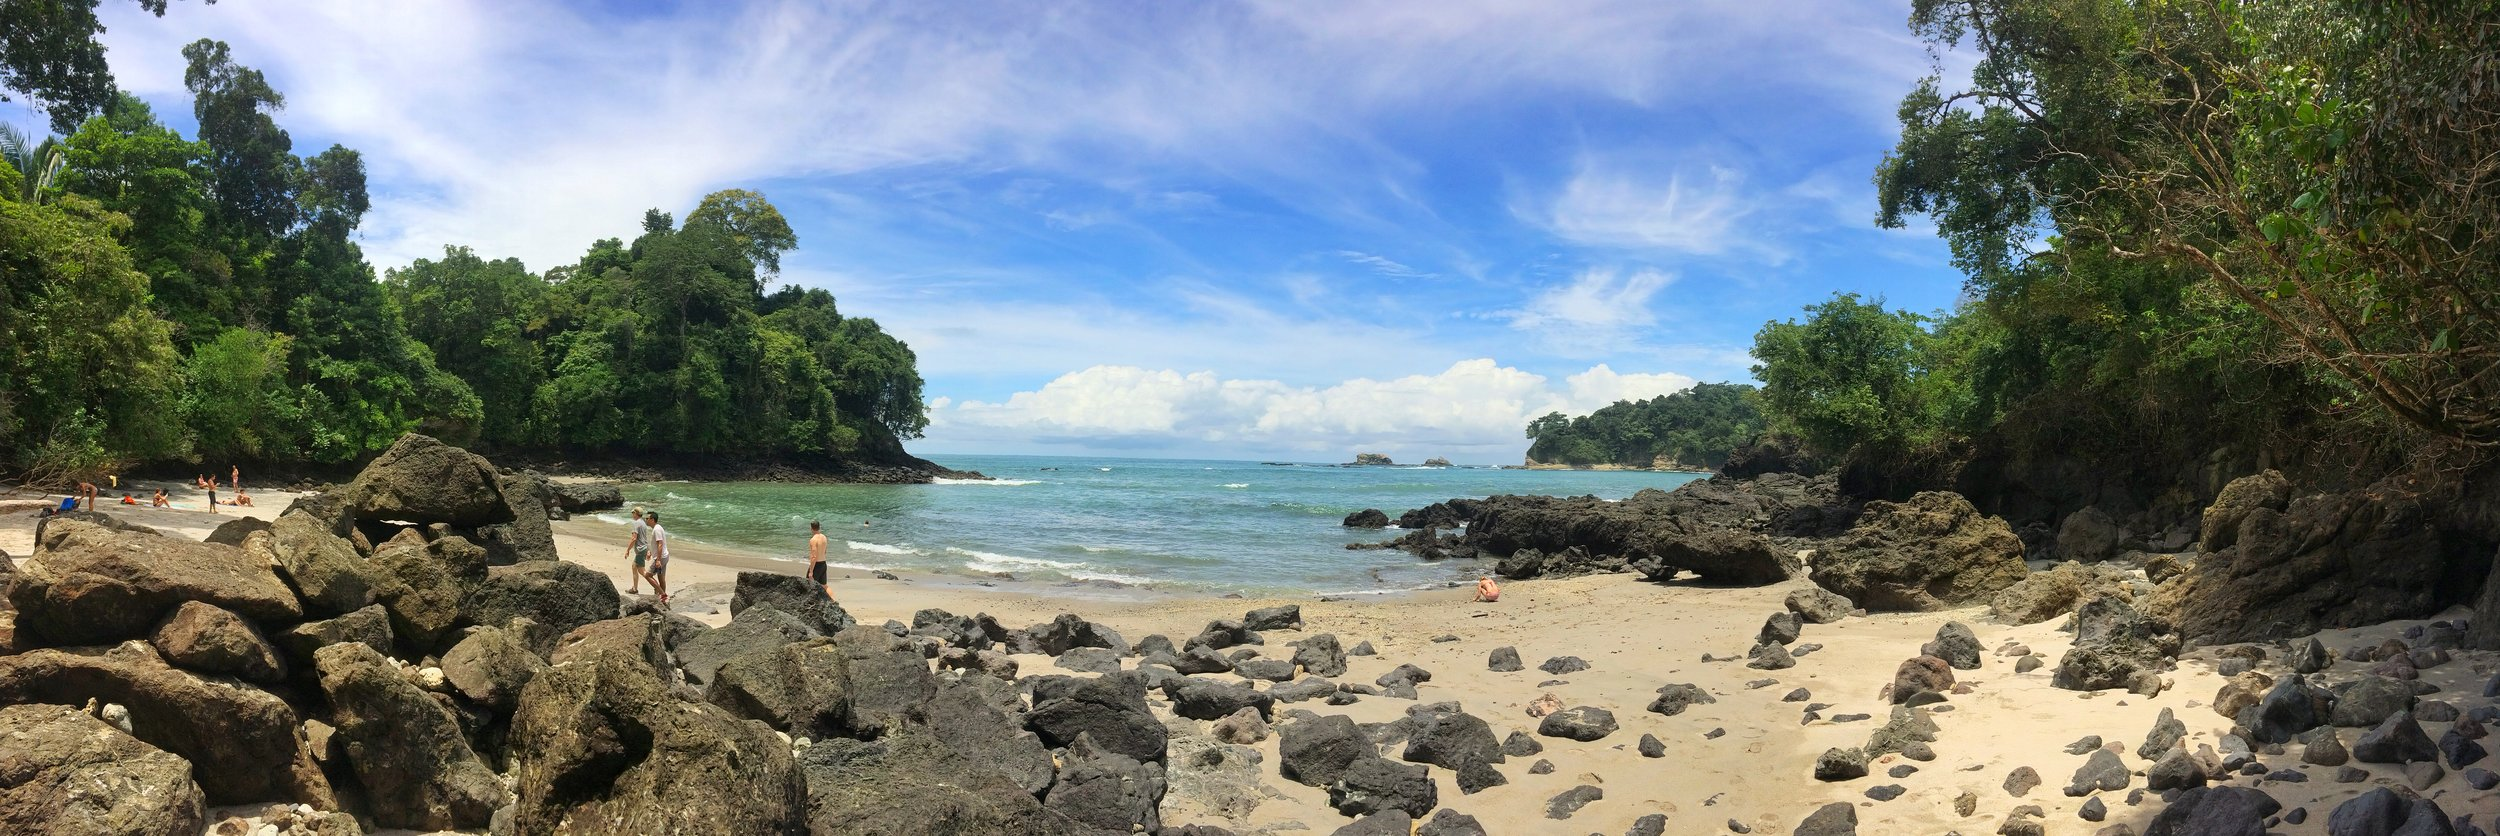 Manuel Antonio National Park has many stunning beaches, including Playa Gemelas